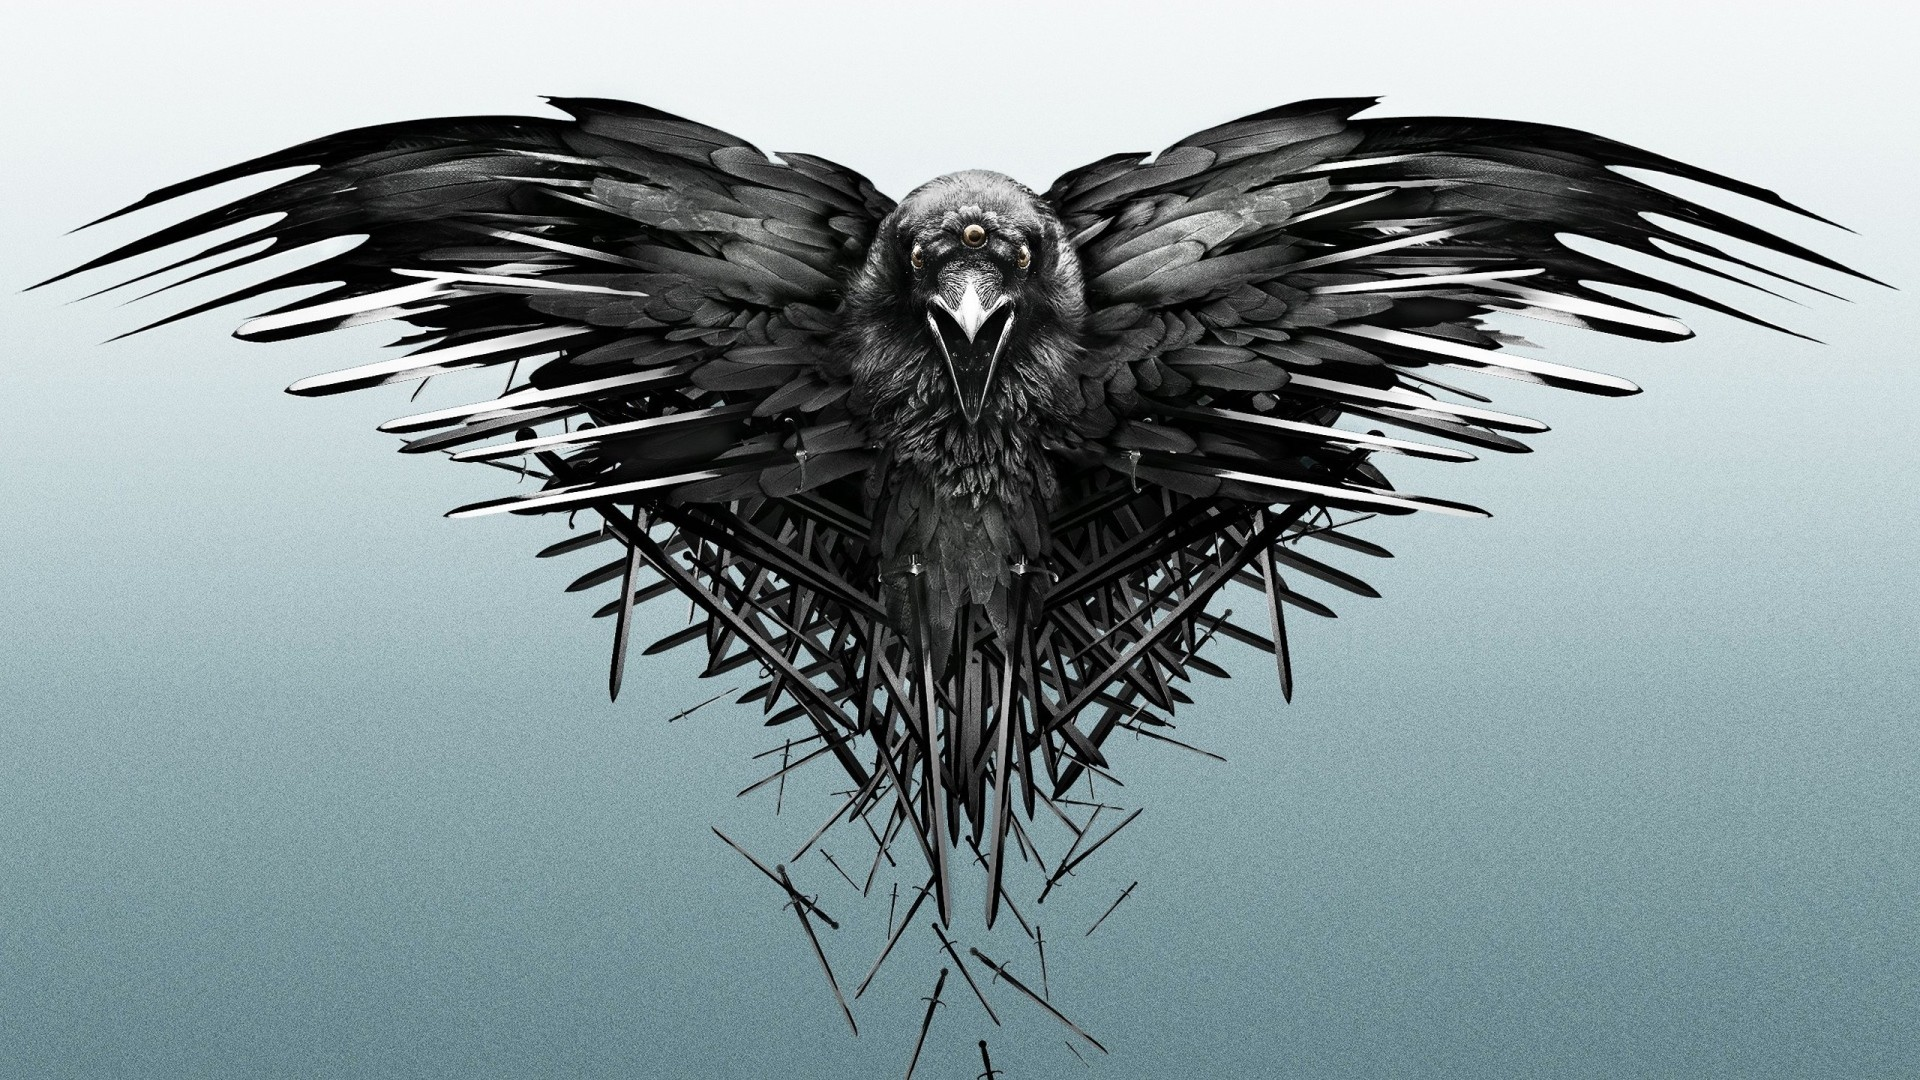 Wallpaper game of thrones, game, raven